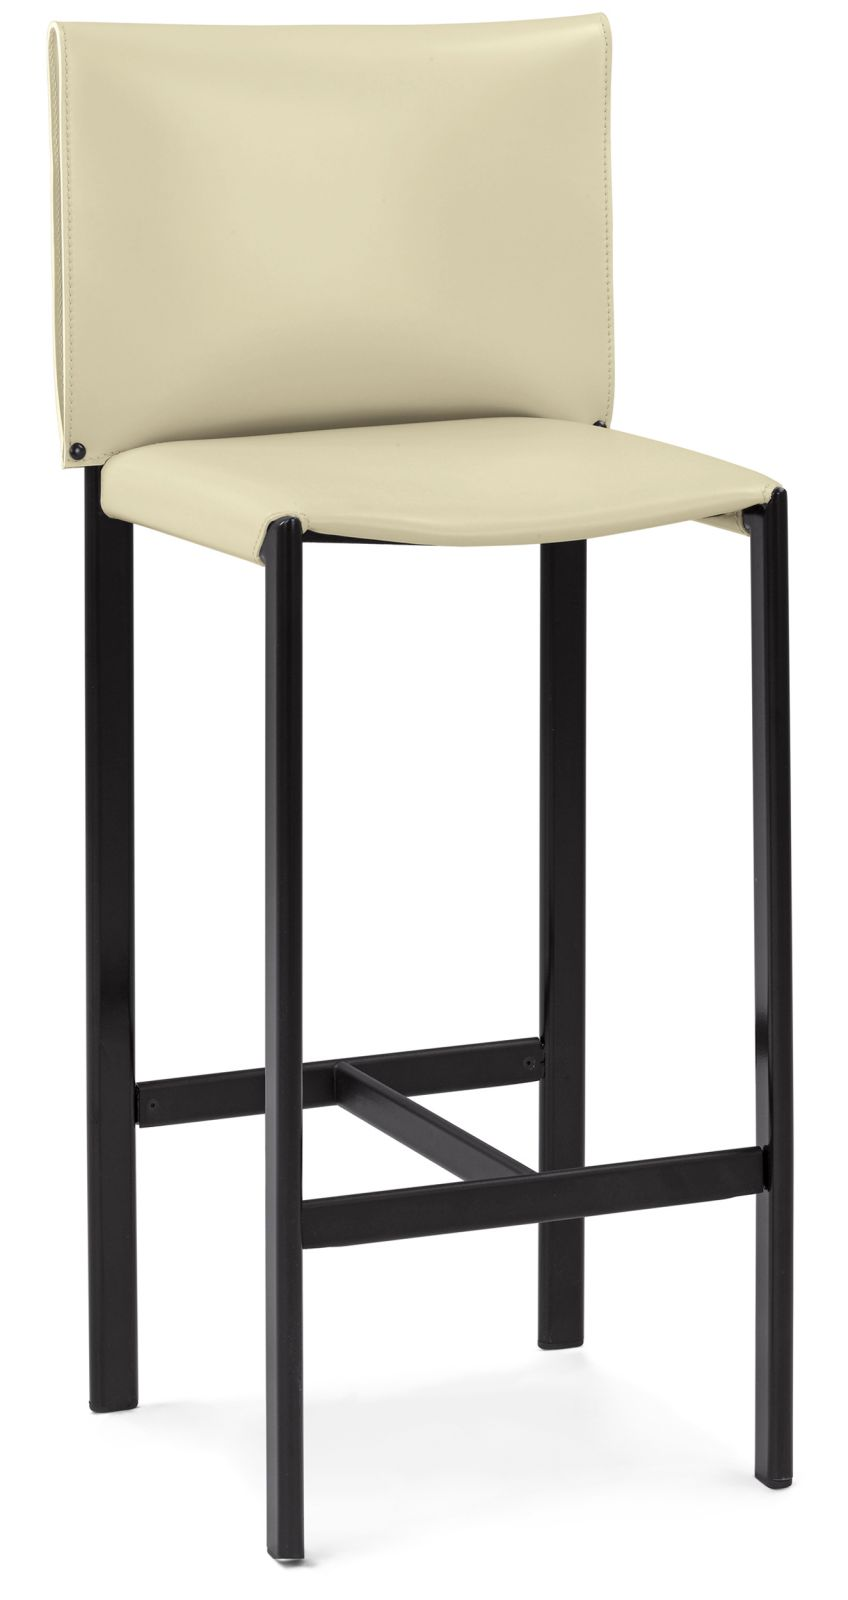 modern-bar-stools-Italian-furniture-large (25).jpg